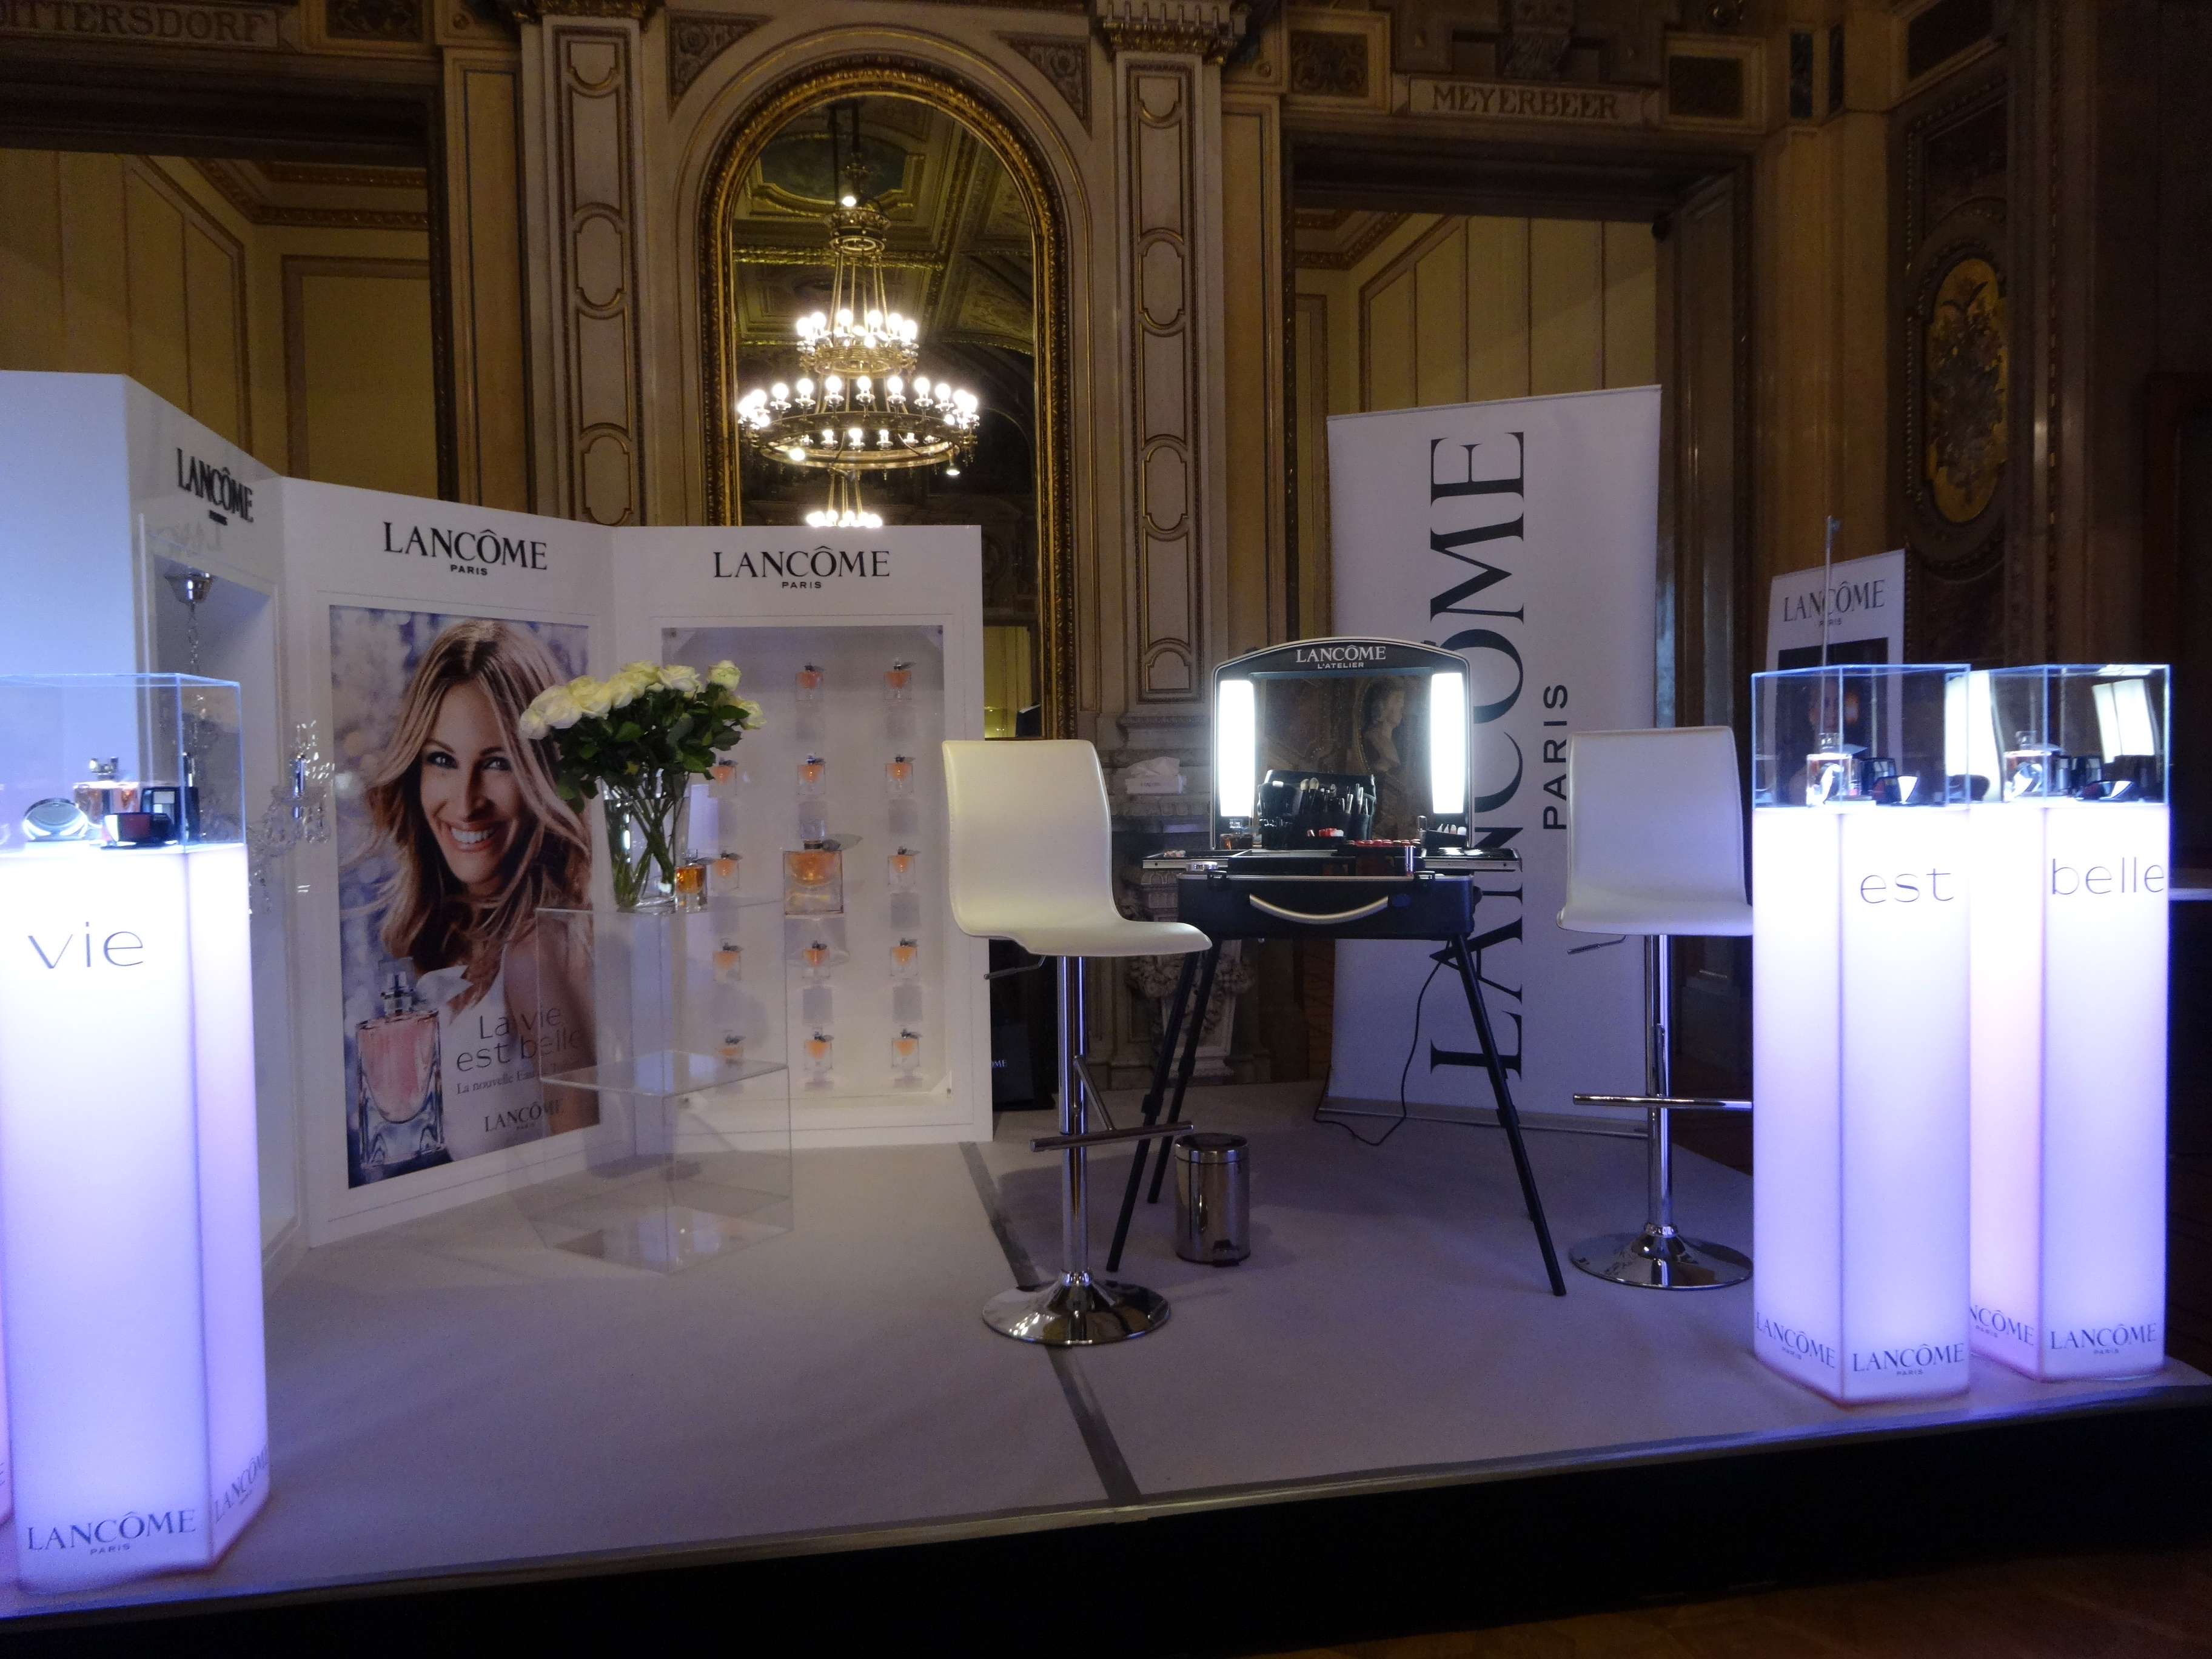 Lancome at the Vienna Opera Ball / Lancome beim Wiener Opernball